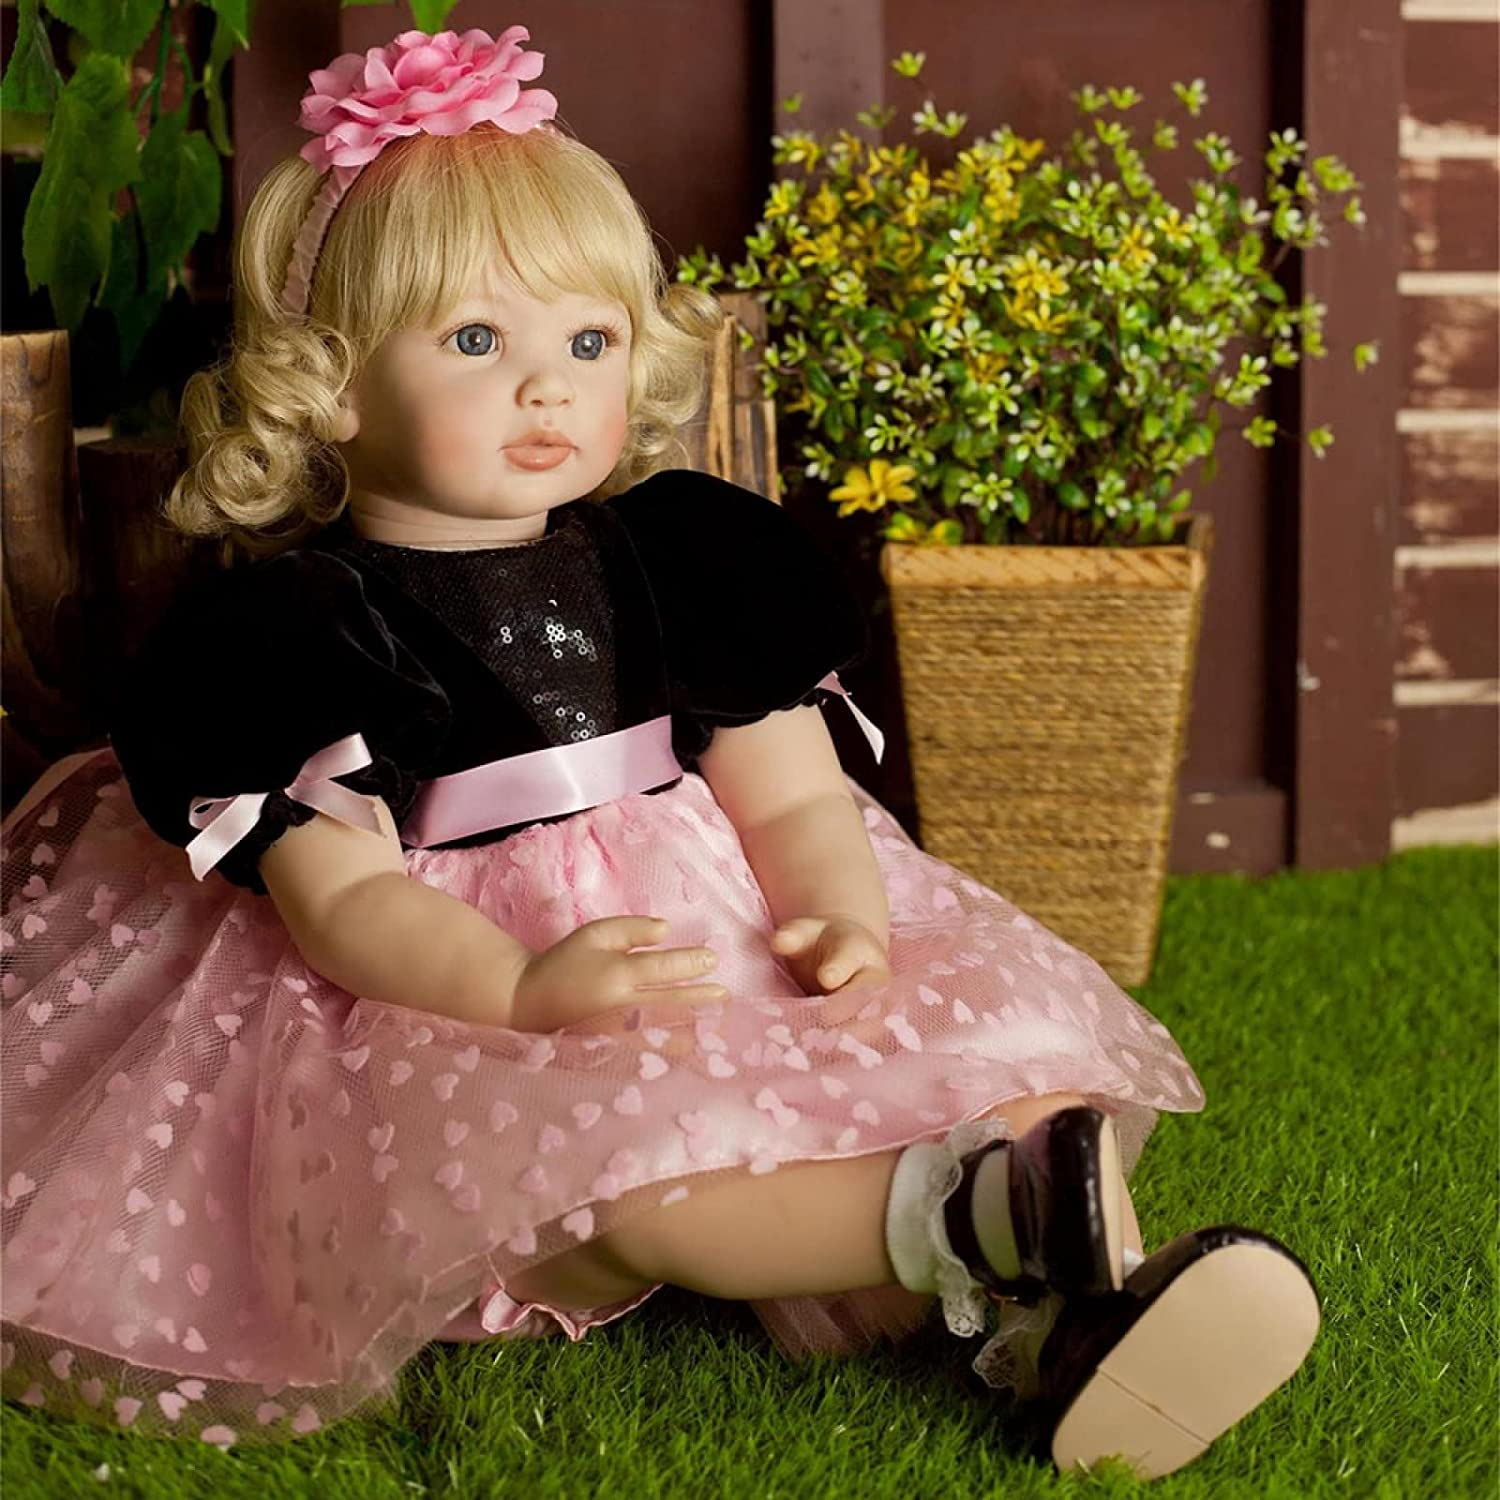 YANRU Doll Now on sale Girl 24 In 61 Baby PVC Reborn Clearance SALE Limited time cm Realisti Free